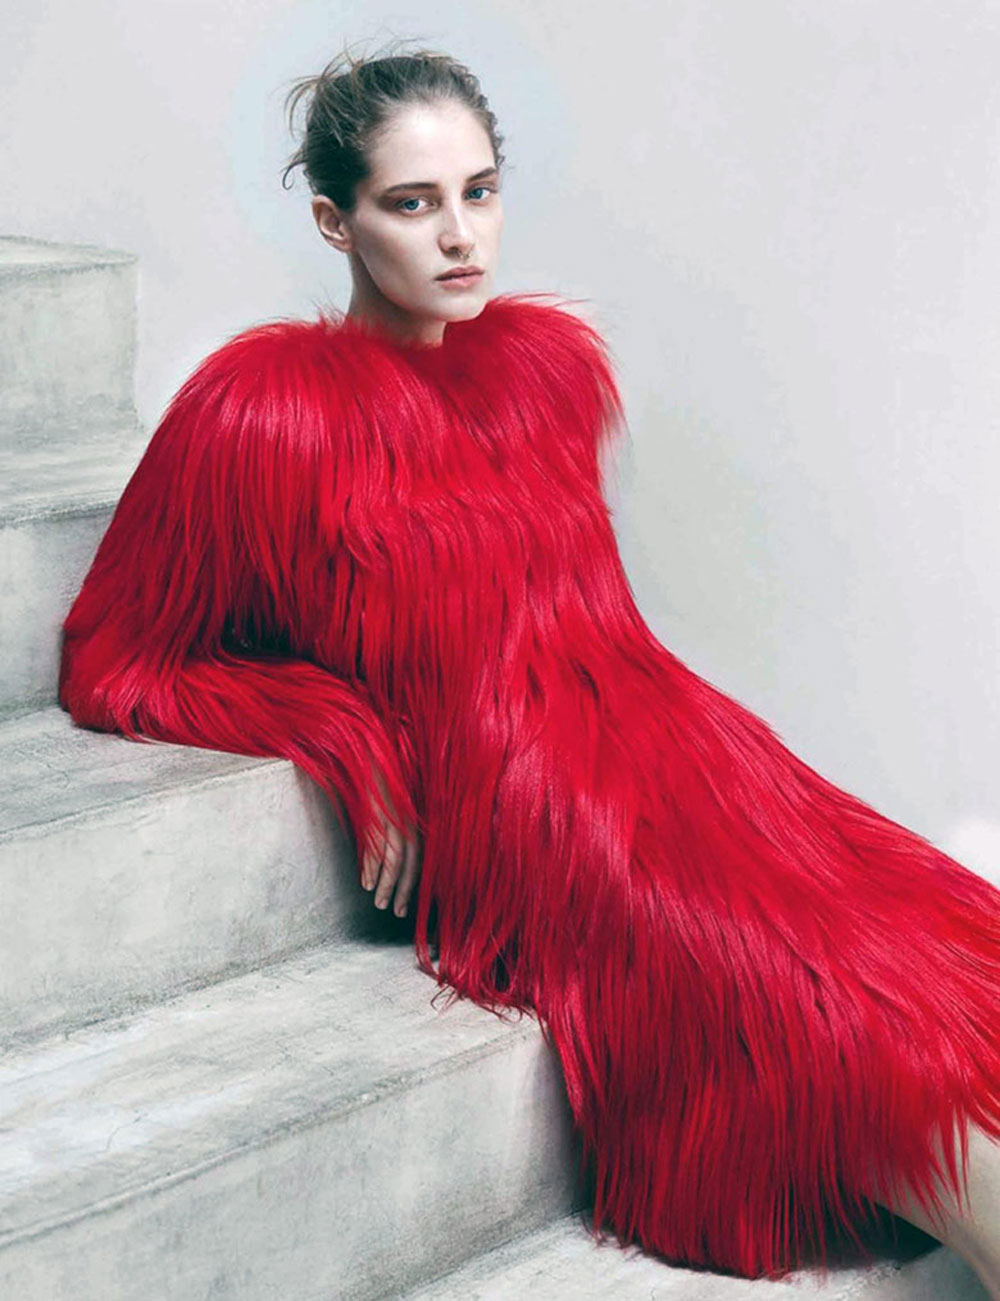 melina, gusto, model, thomas, lohr, photographer, vogue, germany, fasion, magazine, oracle, fox, editorial, photography, red, fur, dress